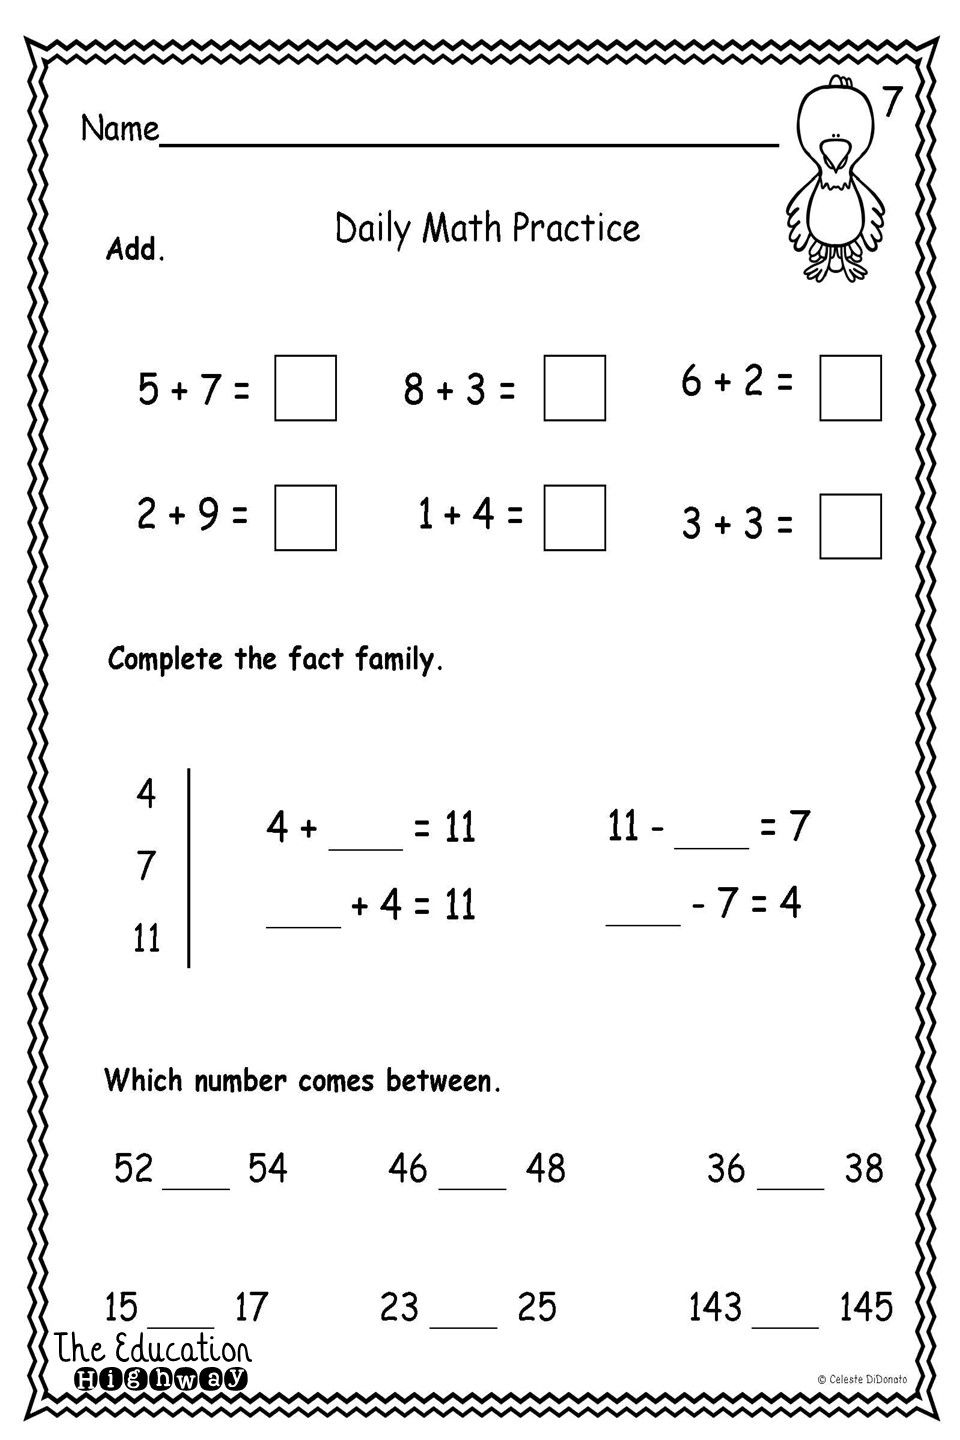 Pirates Morning Math For First Graders With Three Concepts On Each Page Use For Morning Math Work Homewo Math For First Graders Daily Math Practice Math Work [ 1440 x 960 Pixel ]